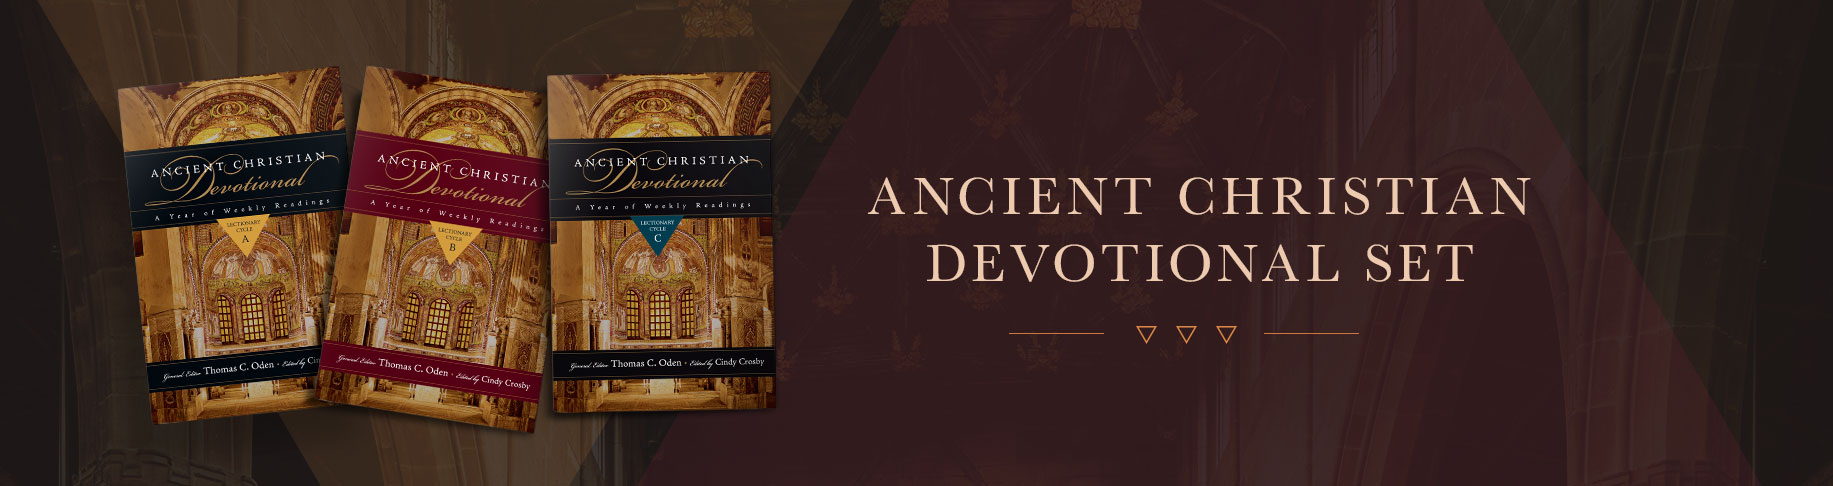 Ancient Christian Devotional Set